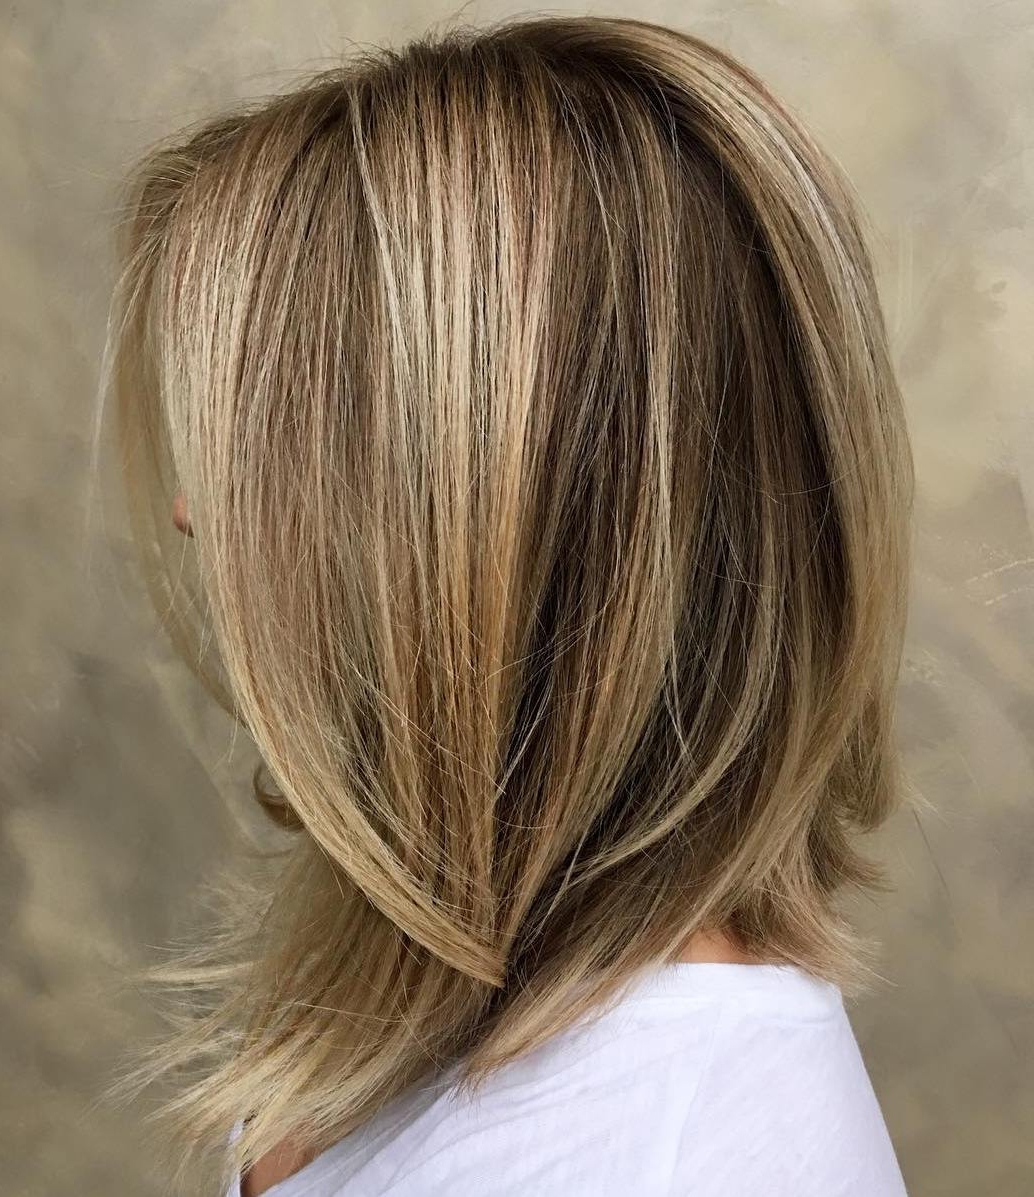 60 Inspiring Long Bob Hairstyles And Lob Haircuts 2018 Intended For Angled Burgundy Bob Hairstyles With Voluminous Layers (View 11 of 20)